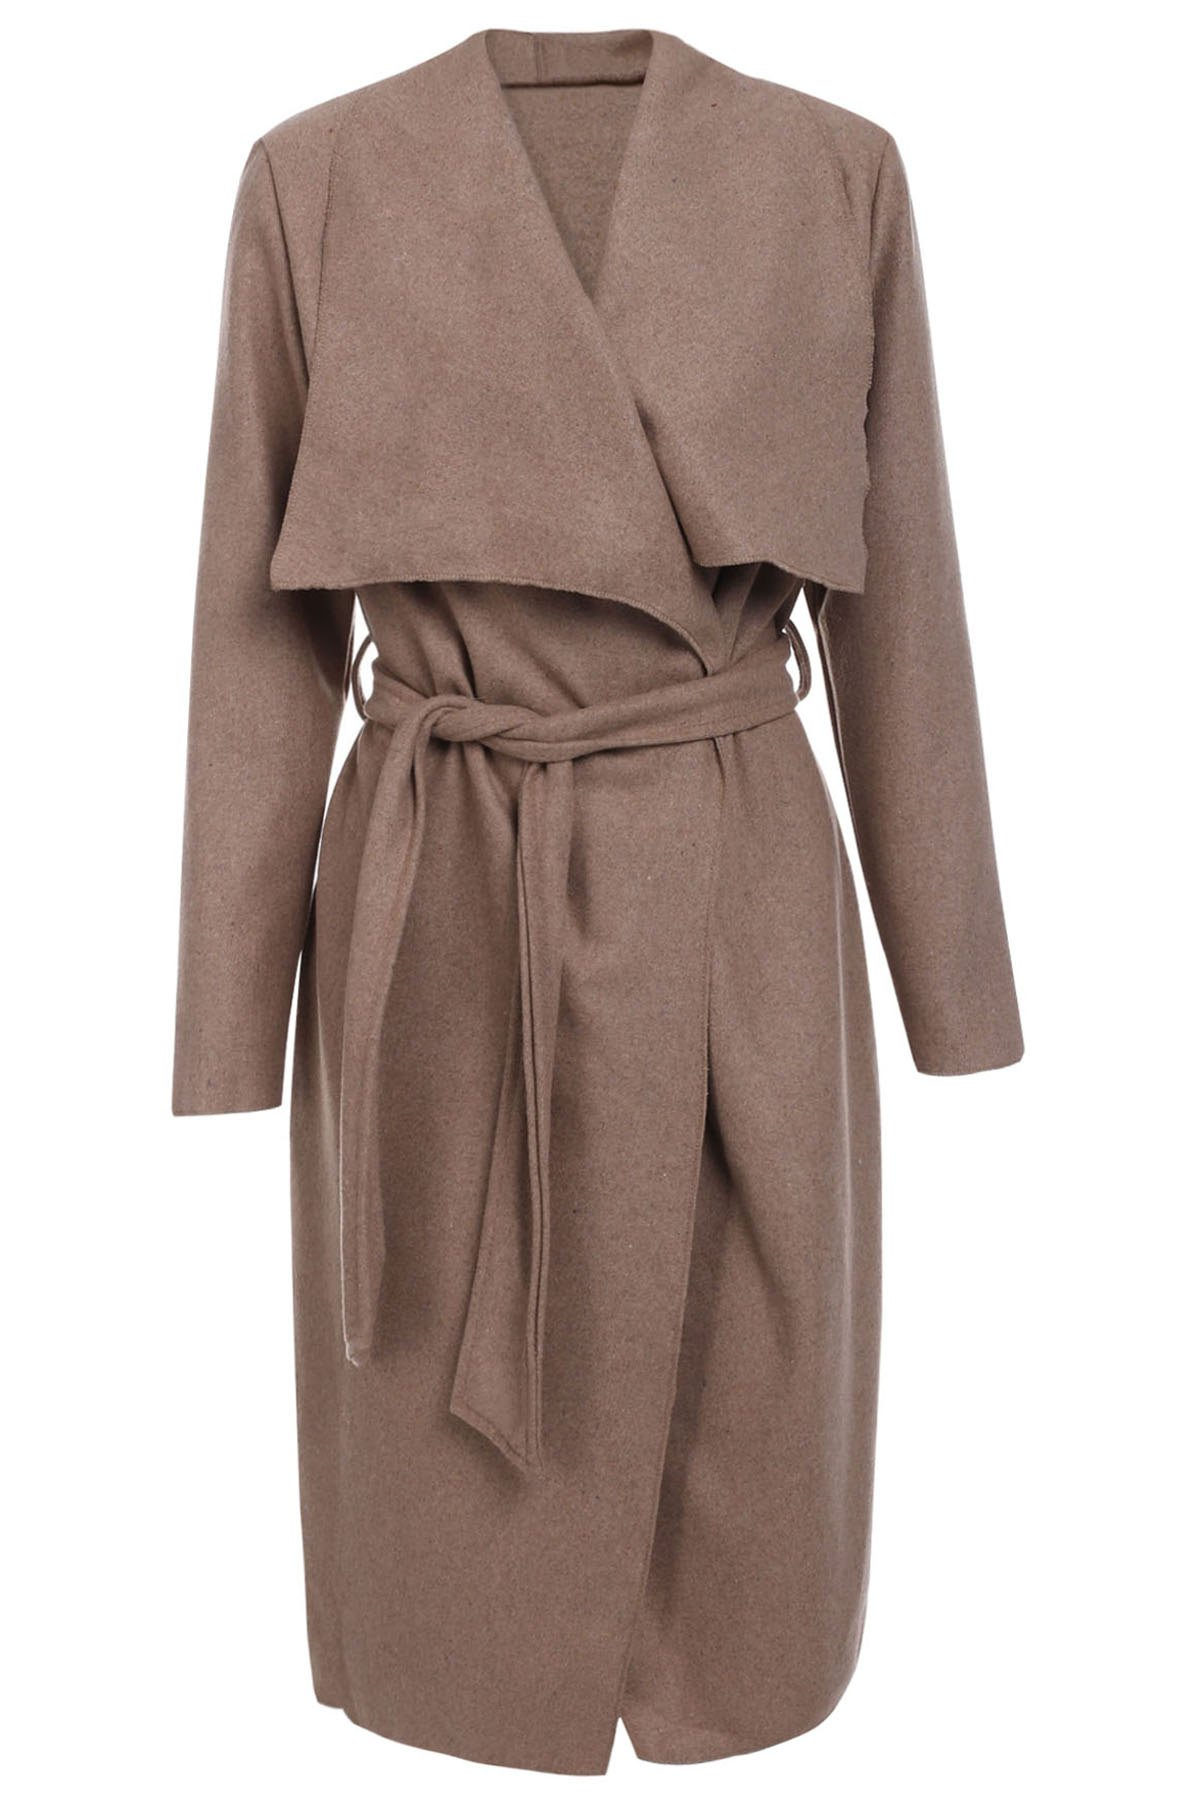 Vintage Style Long Sleeve Turn-Down Collar Self Tie Belt Pure Color Women's Coat - KHAKI ONE SIZE(FIT SIZE XS TO M)